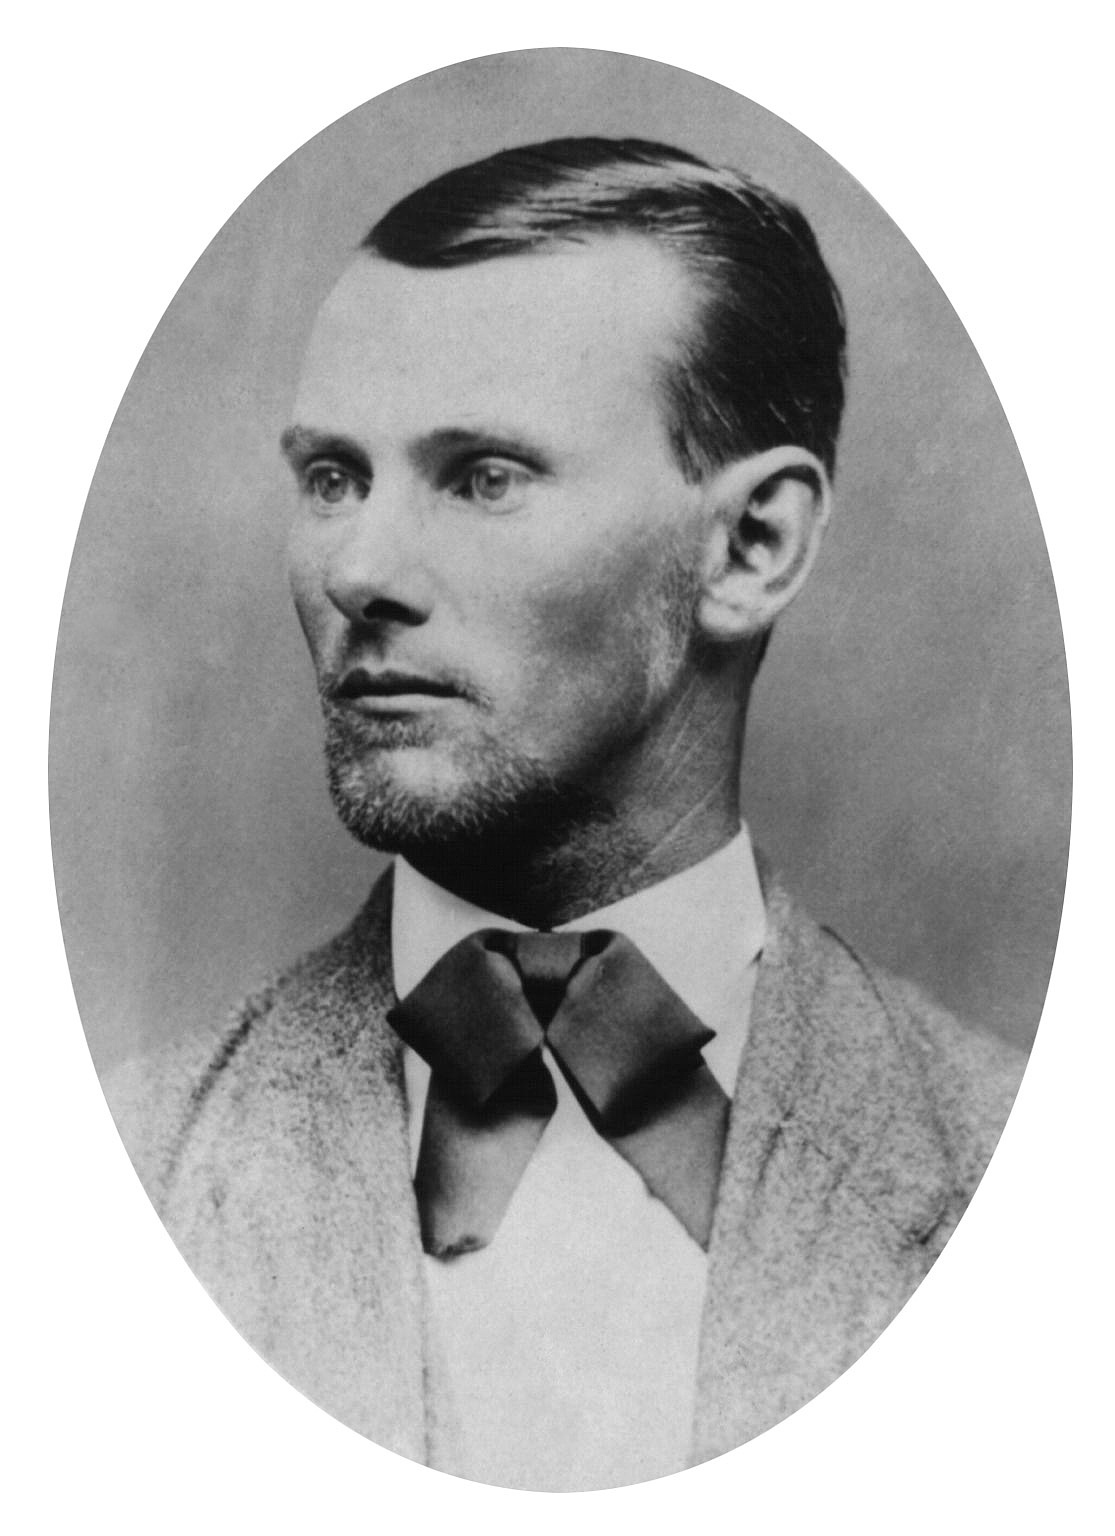 Jesse_james_portrait-163727.jpg